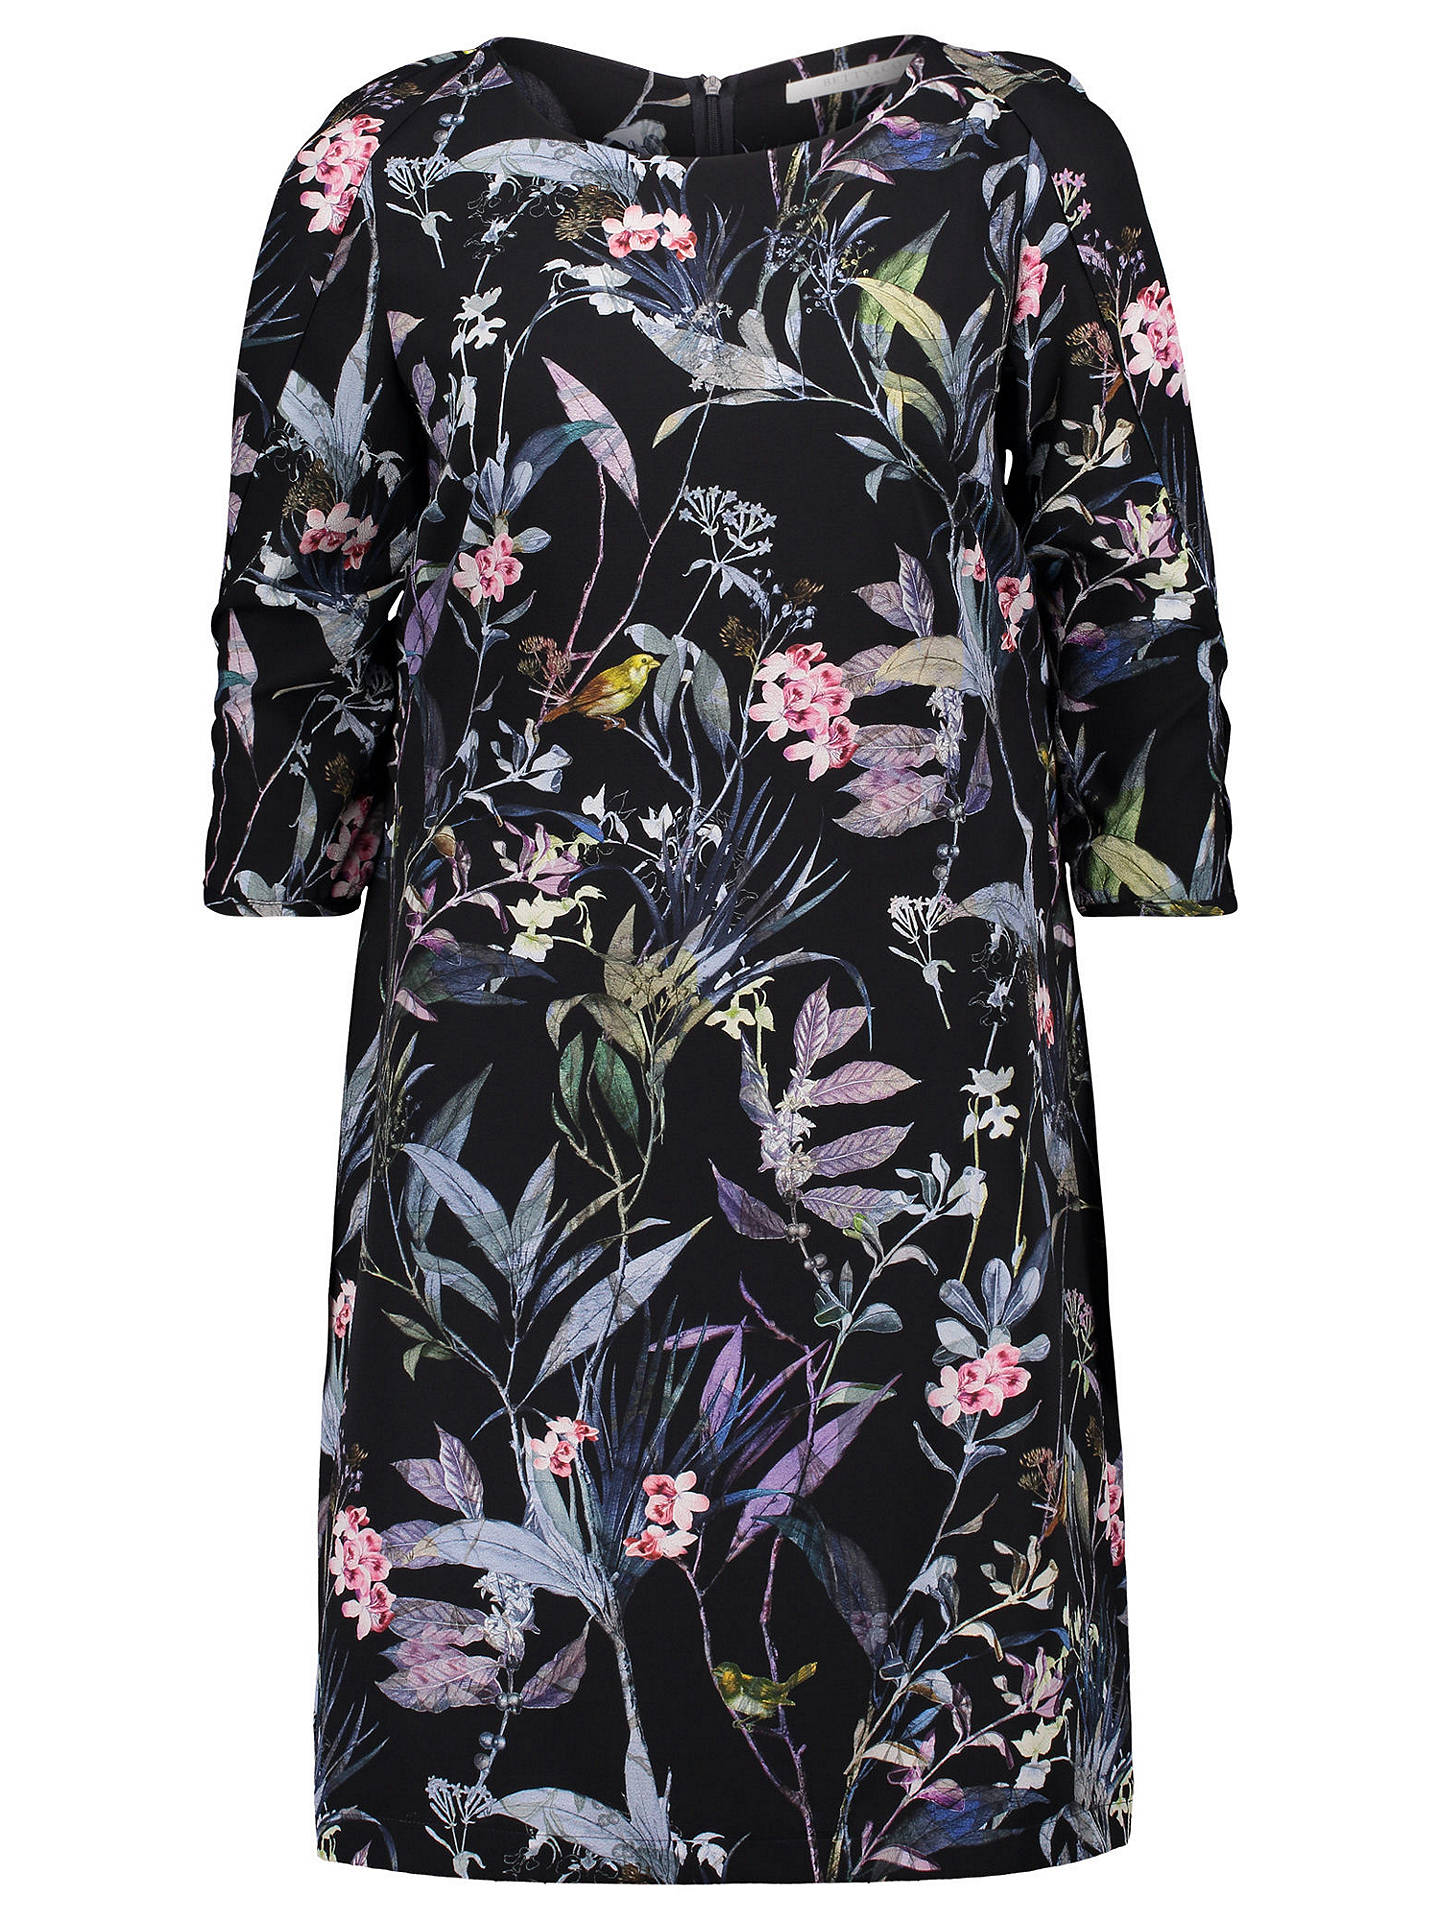 BuyBetty & Co. Floral Print Crepe Dress, Blue/Purple, 10 Online at johnlewis.com